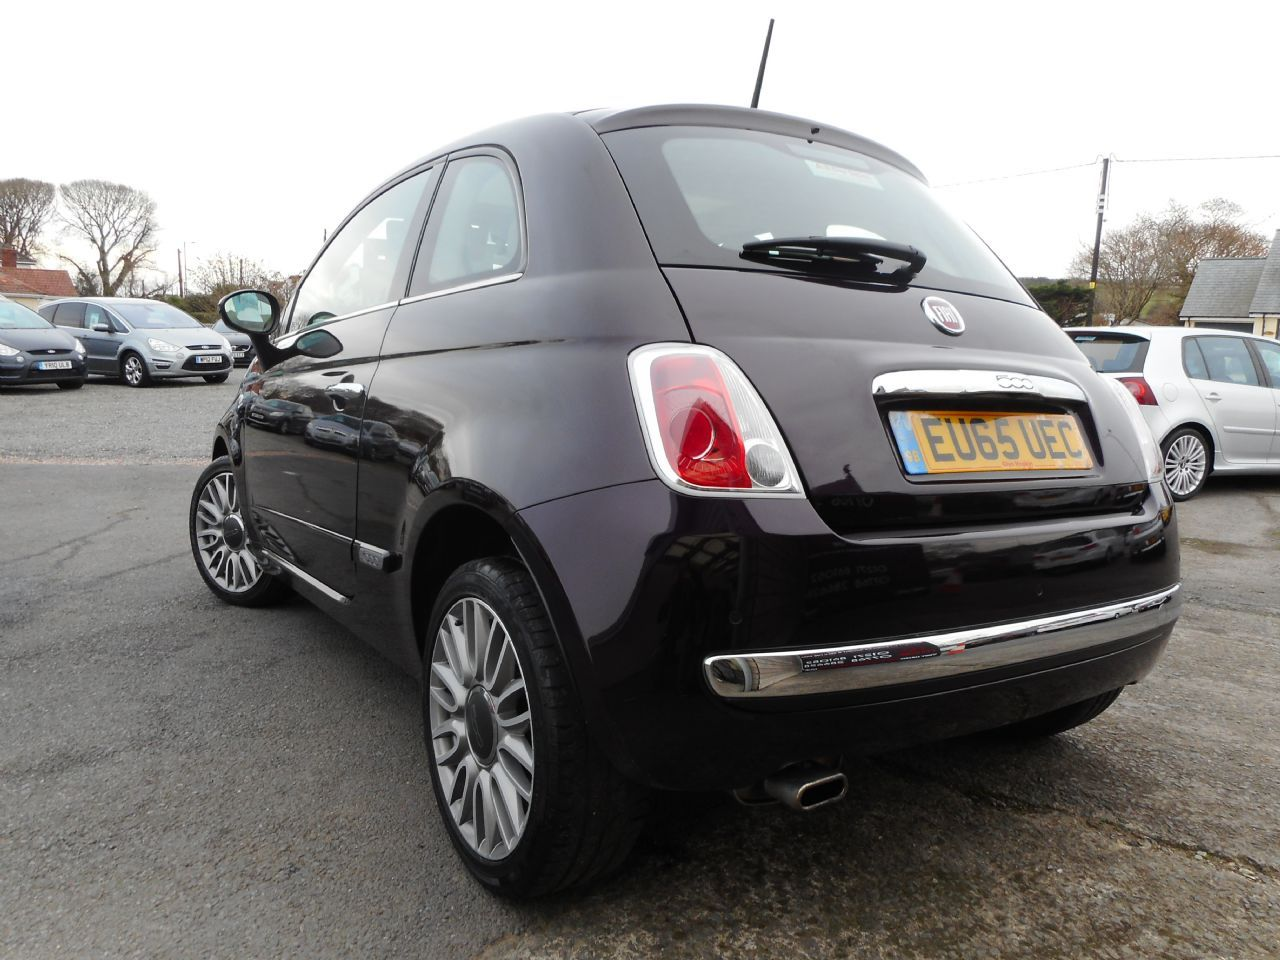 FIAT 500 1.2i Lounge S/S (2015) - Picture 3